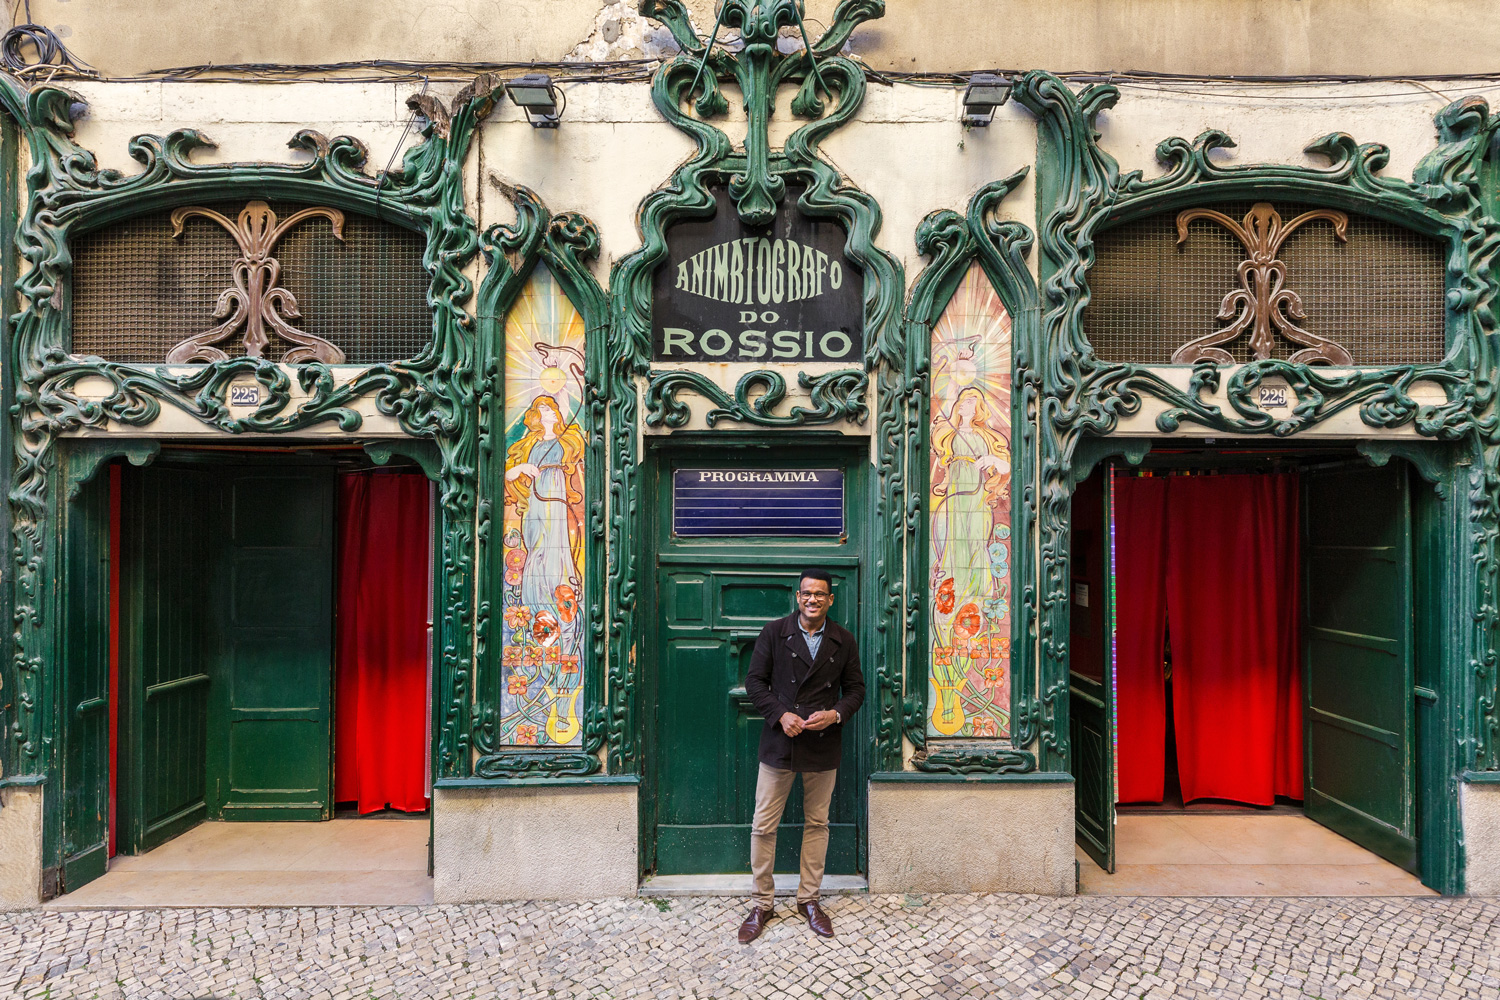 Manager José Antonio Almeida poses at the entrance of his business